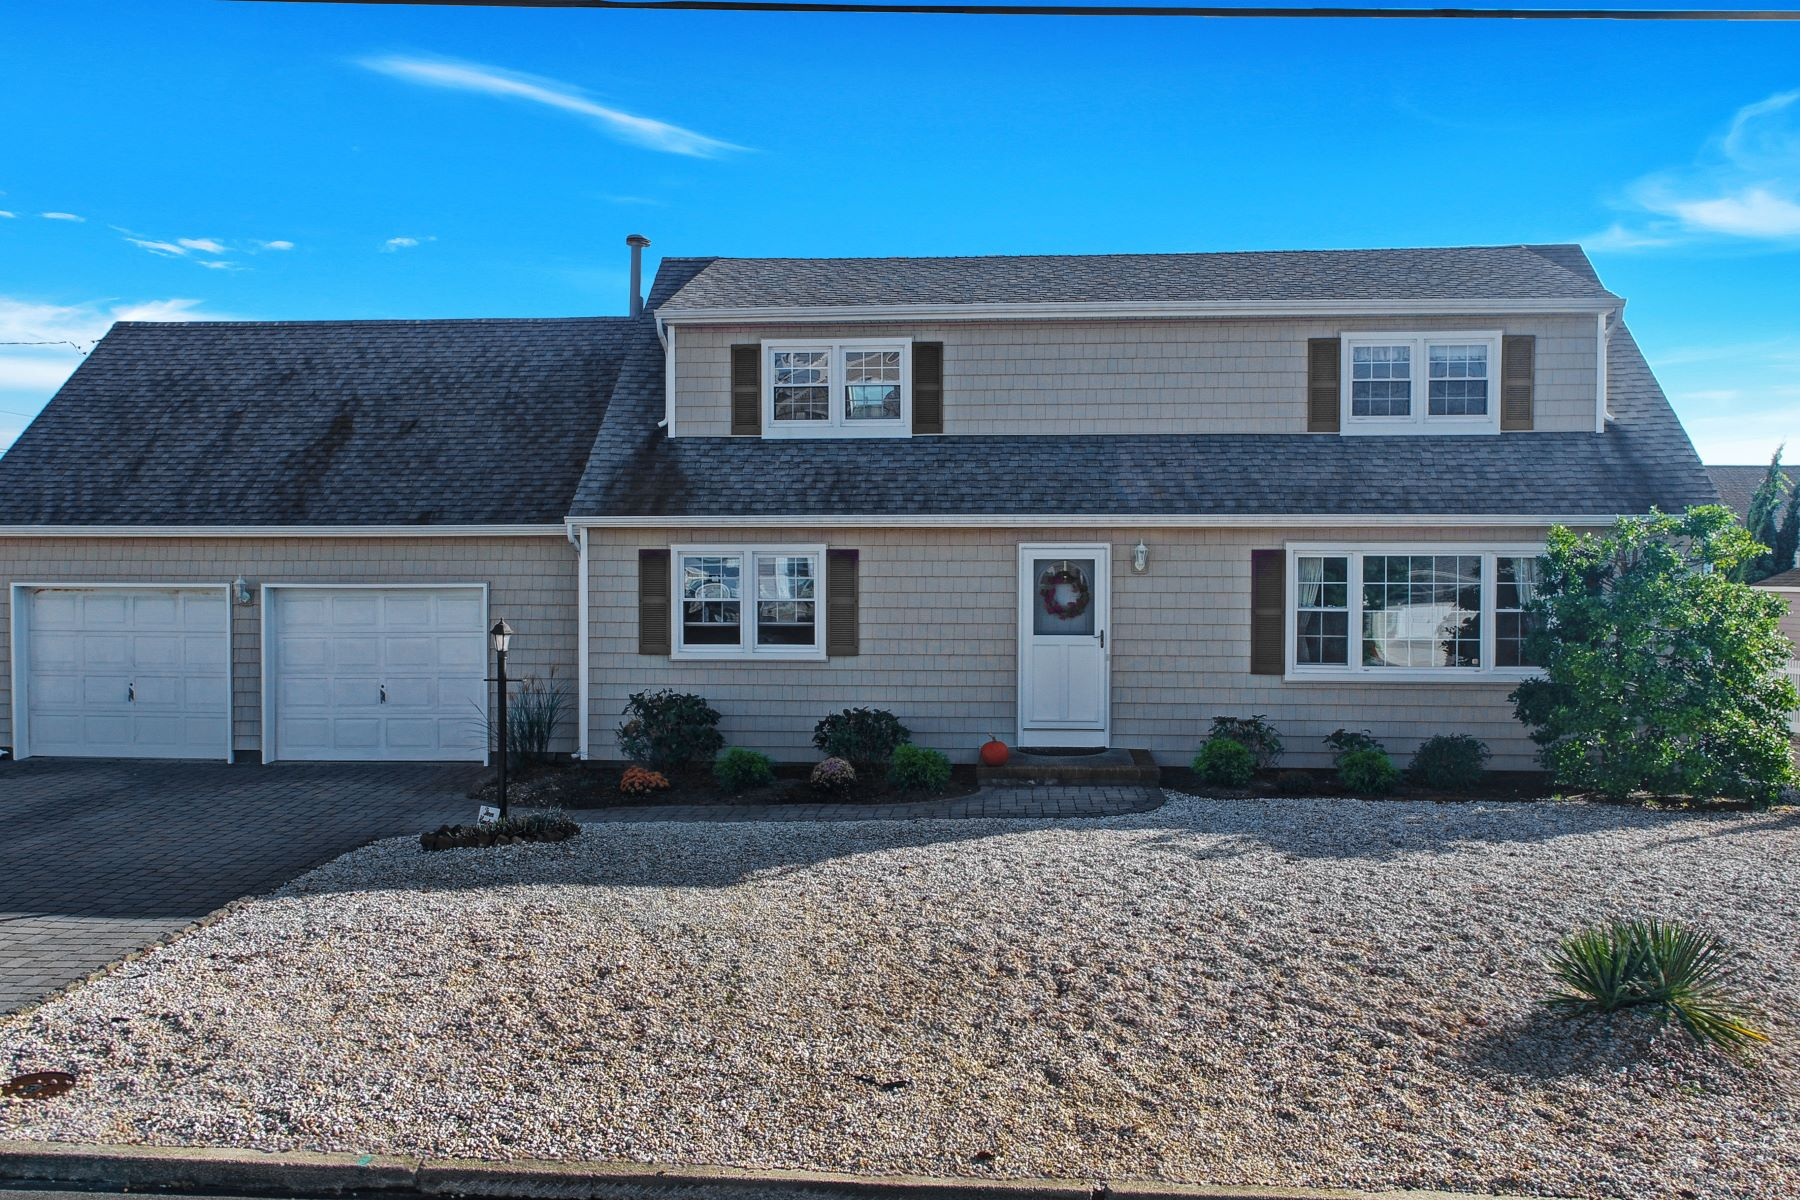 Single Family Home for Sale at Desirable Mantoloking Shores 307 Brigantine Lane, Brick, New Jersey 08738 United States